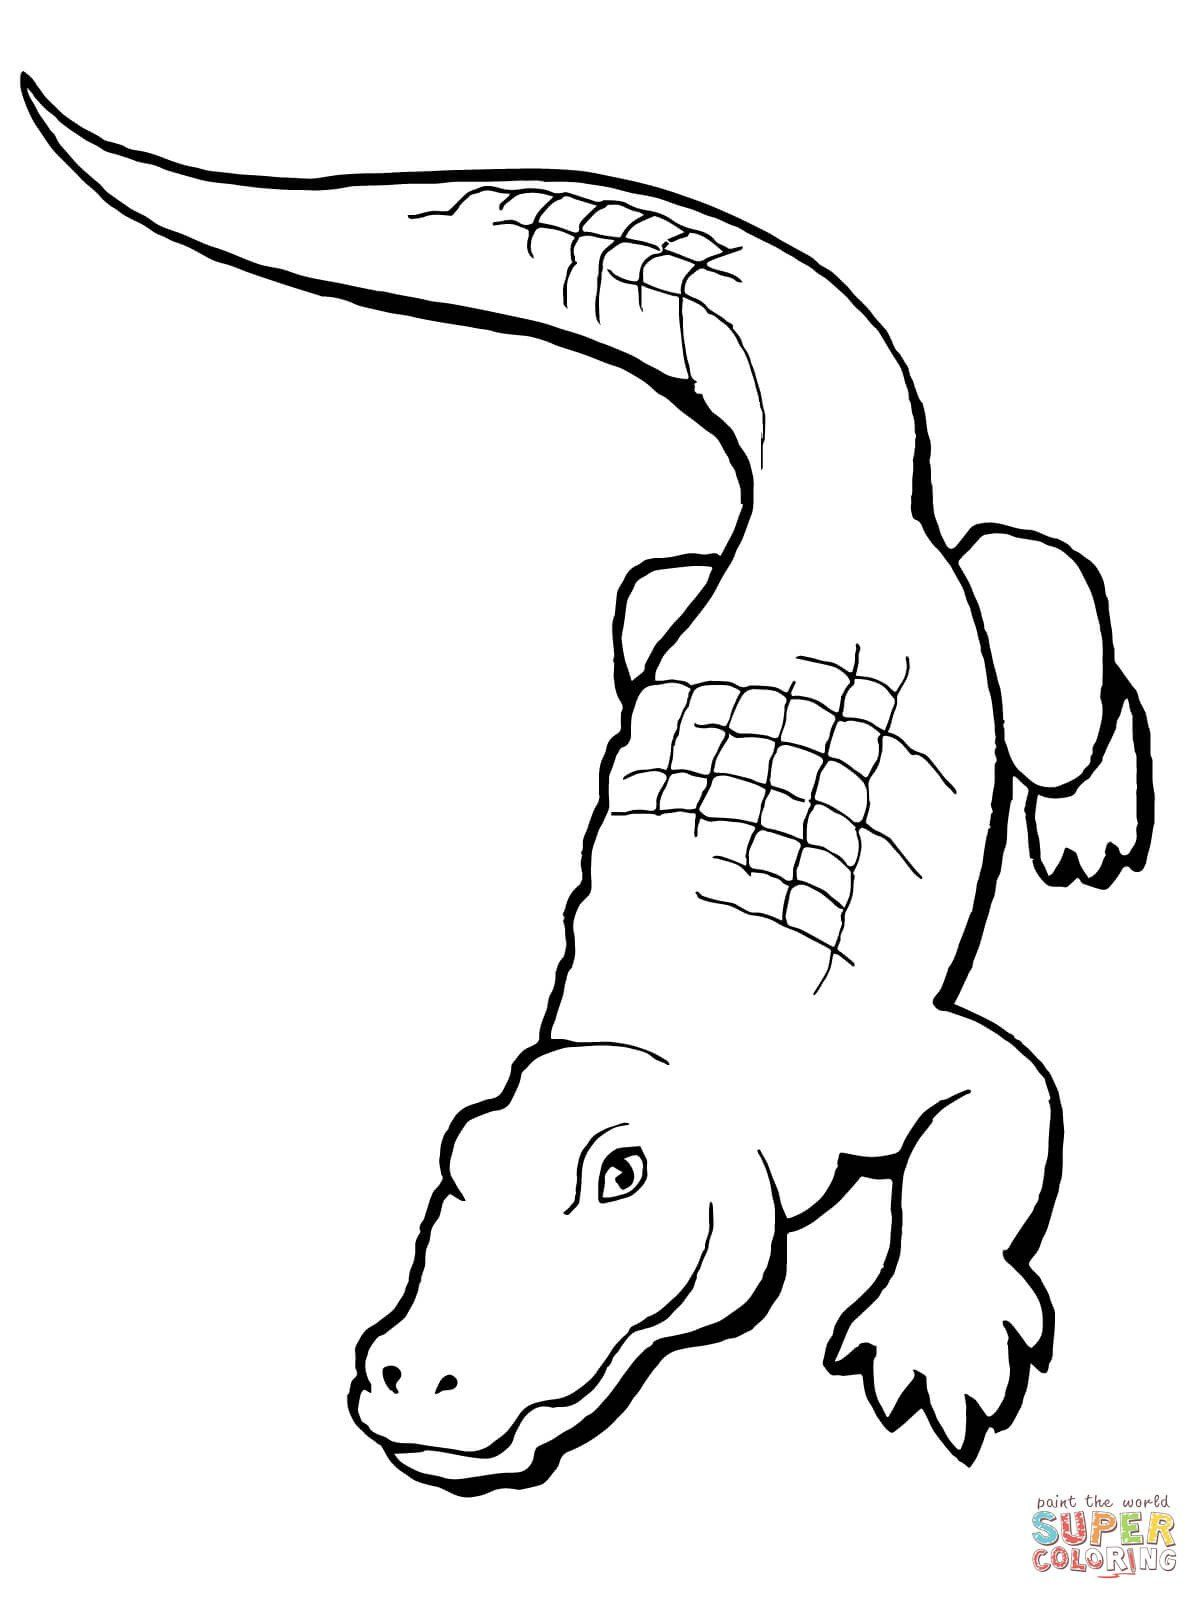 Cute Alligator Coloring Pages Realistic Alligator Coloring Page In 2020 Coloring Pages Cute Coloring Pages Jesus Coloring Pages